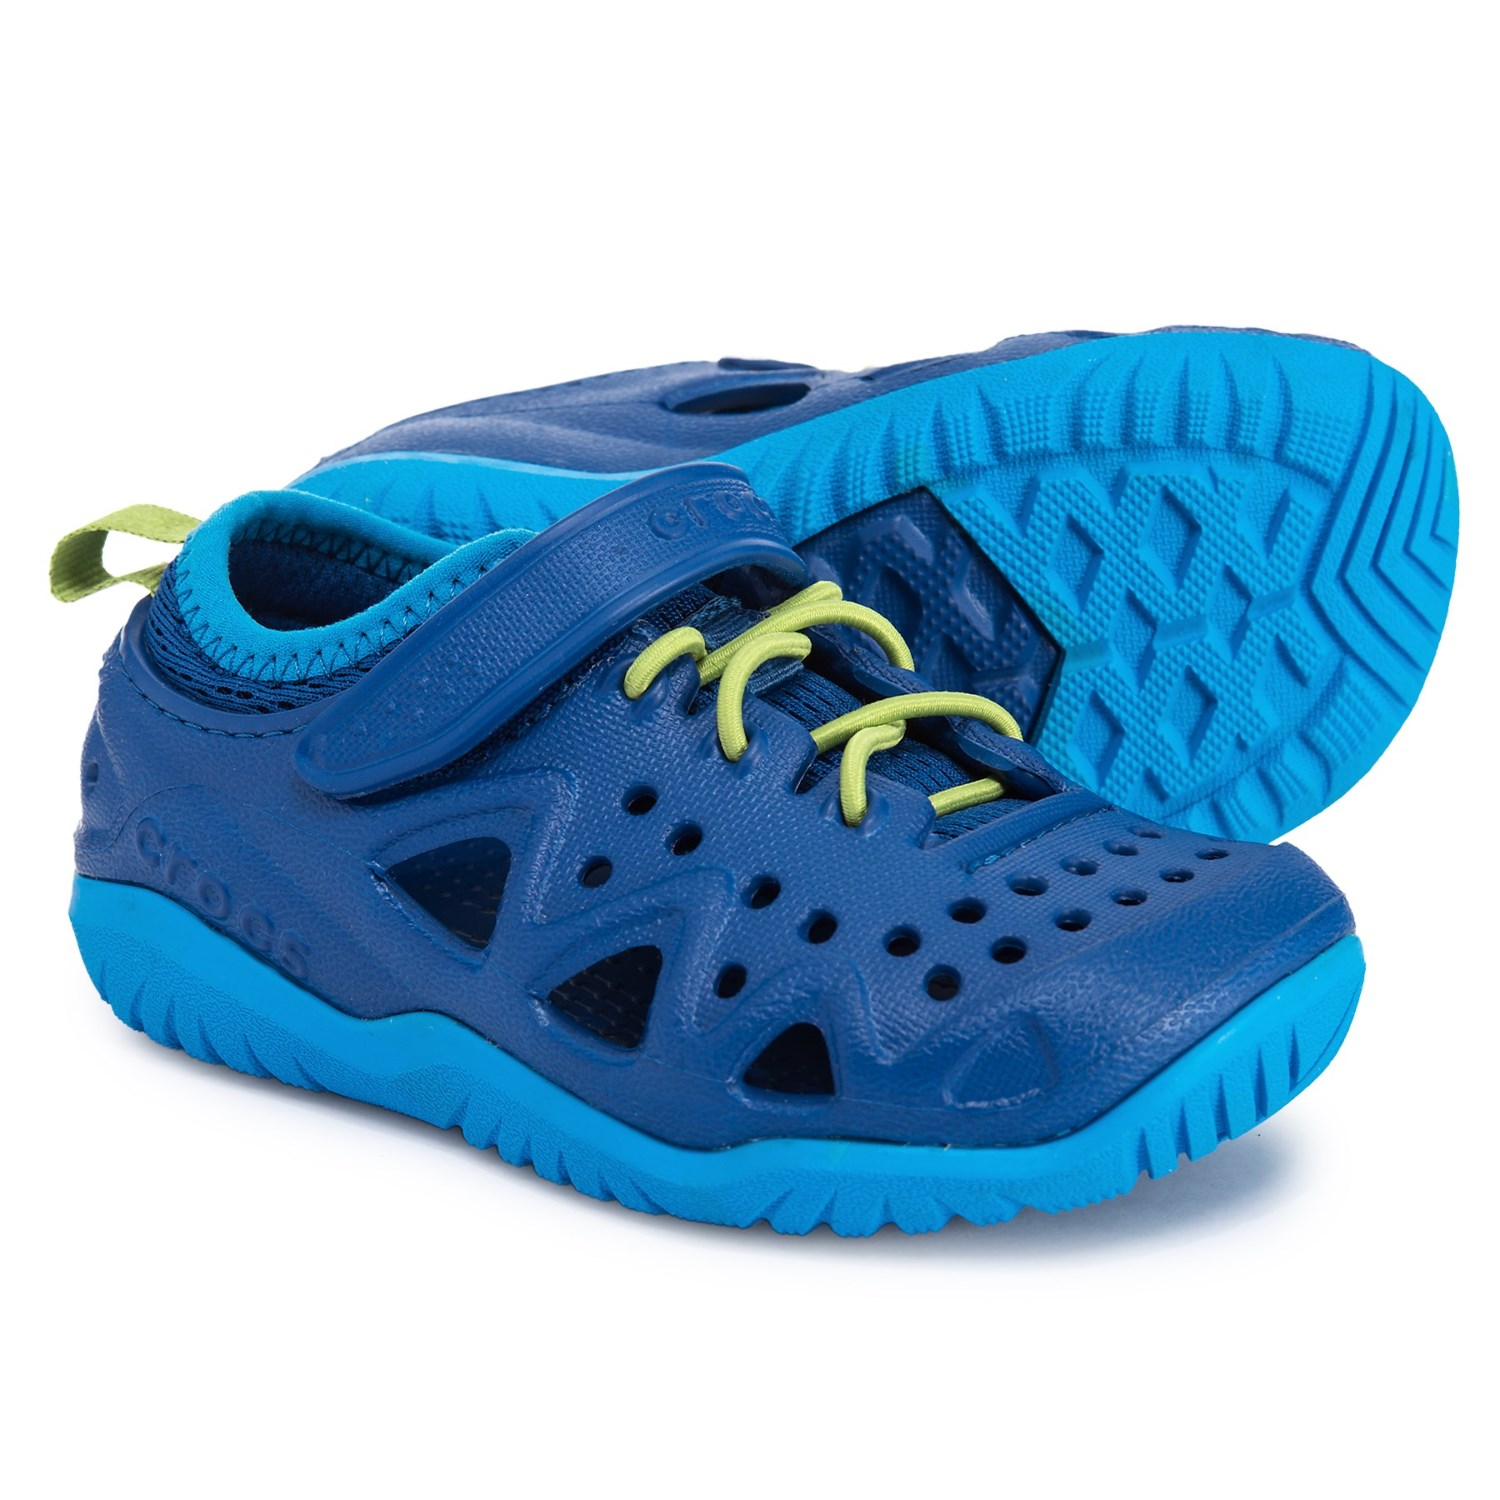 4428ff4a2 Crocs Swiftwater Play Shoes (For Boys) in Blue Jean Green